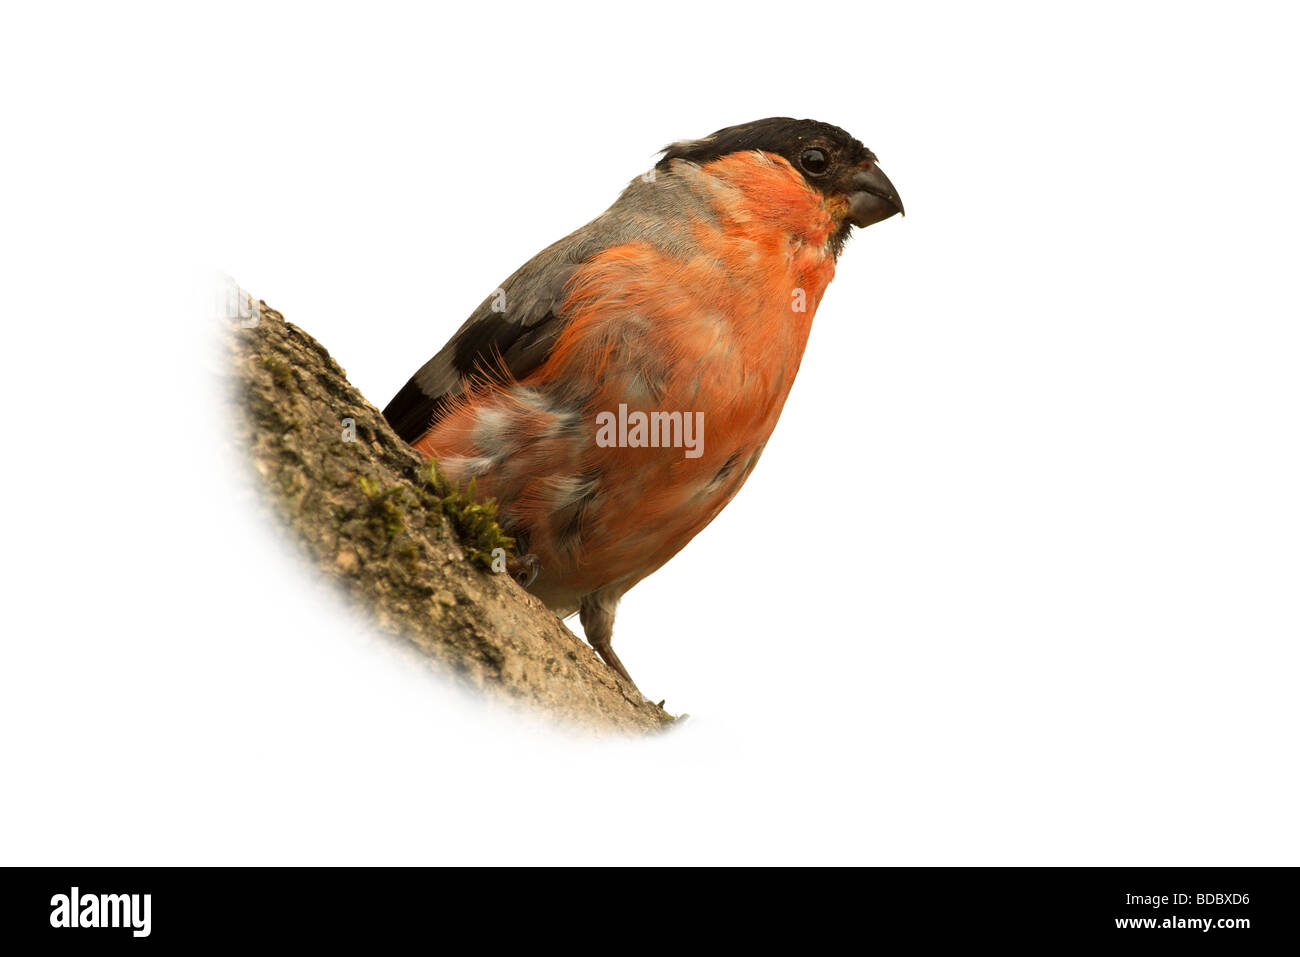 an adult male bullfinch isolated against a white background - Stock Image